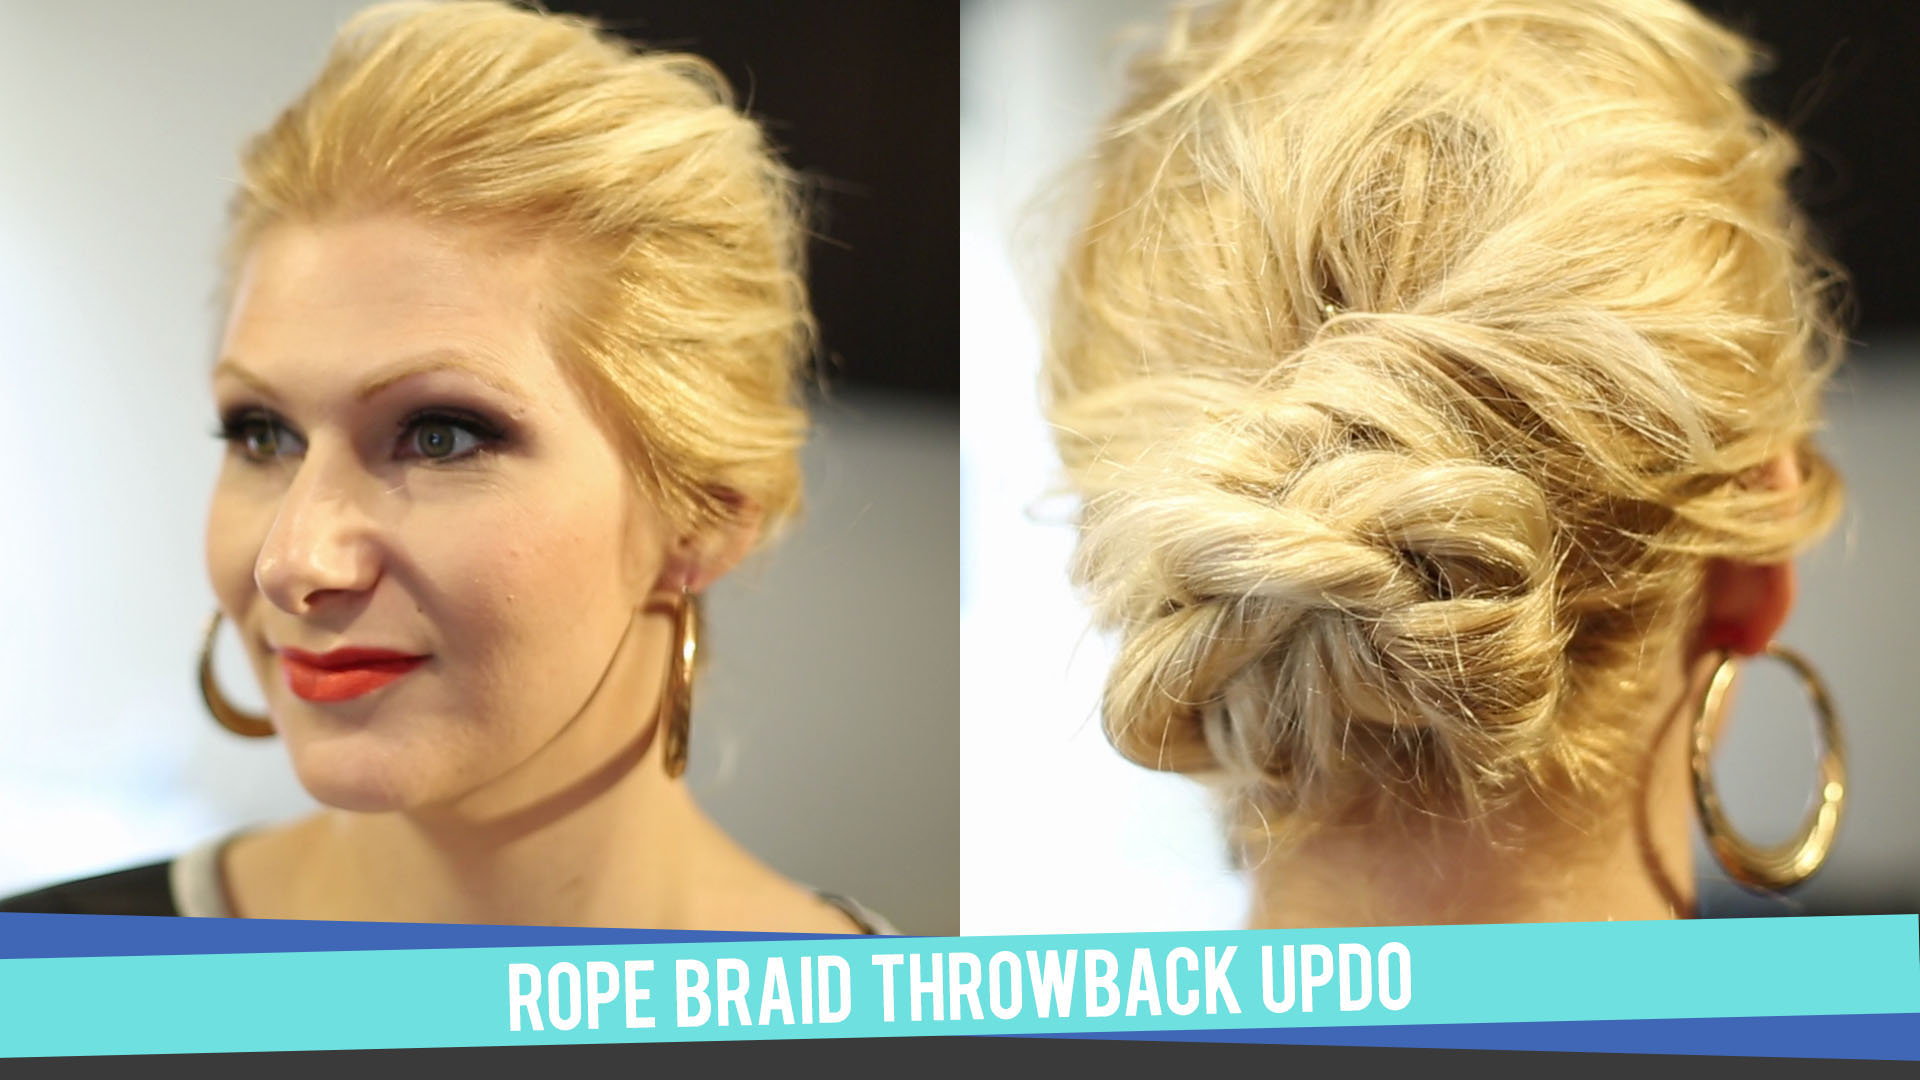 Discussion on this topic: Go For A Chignon Hairstyle To Appear , go-for-a-chignon-hairstyle-to-appear/